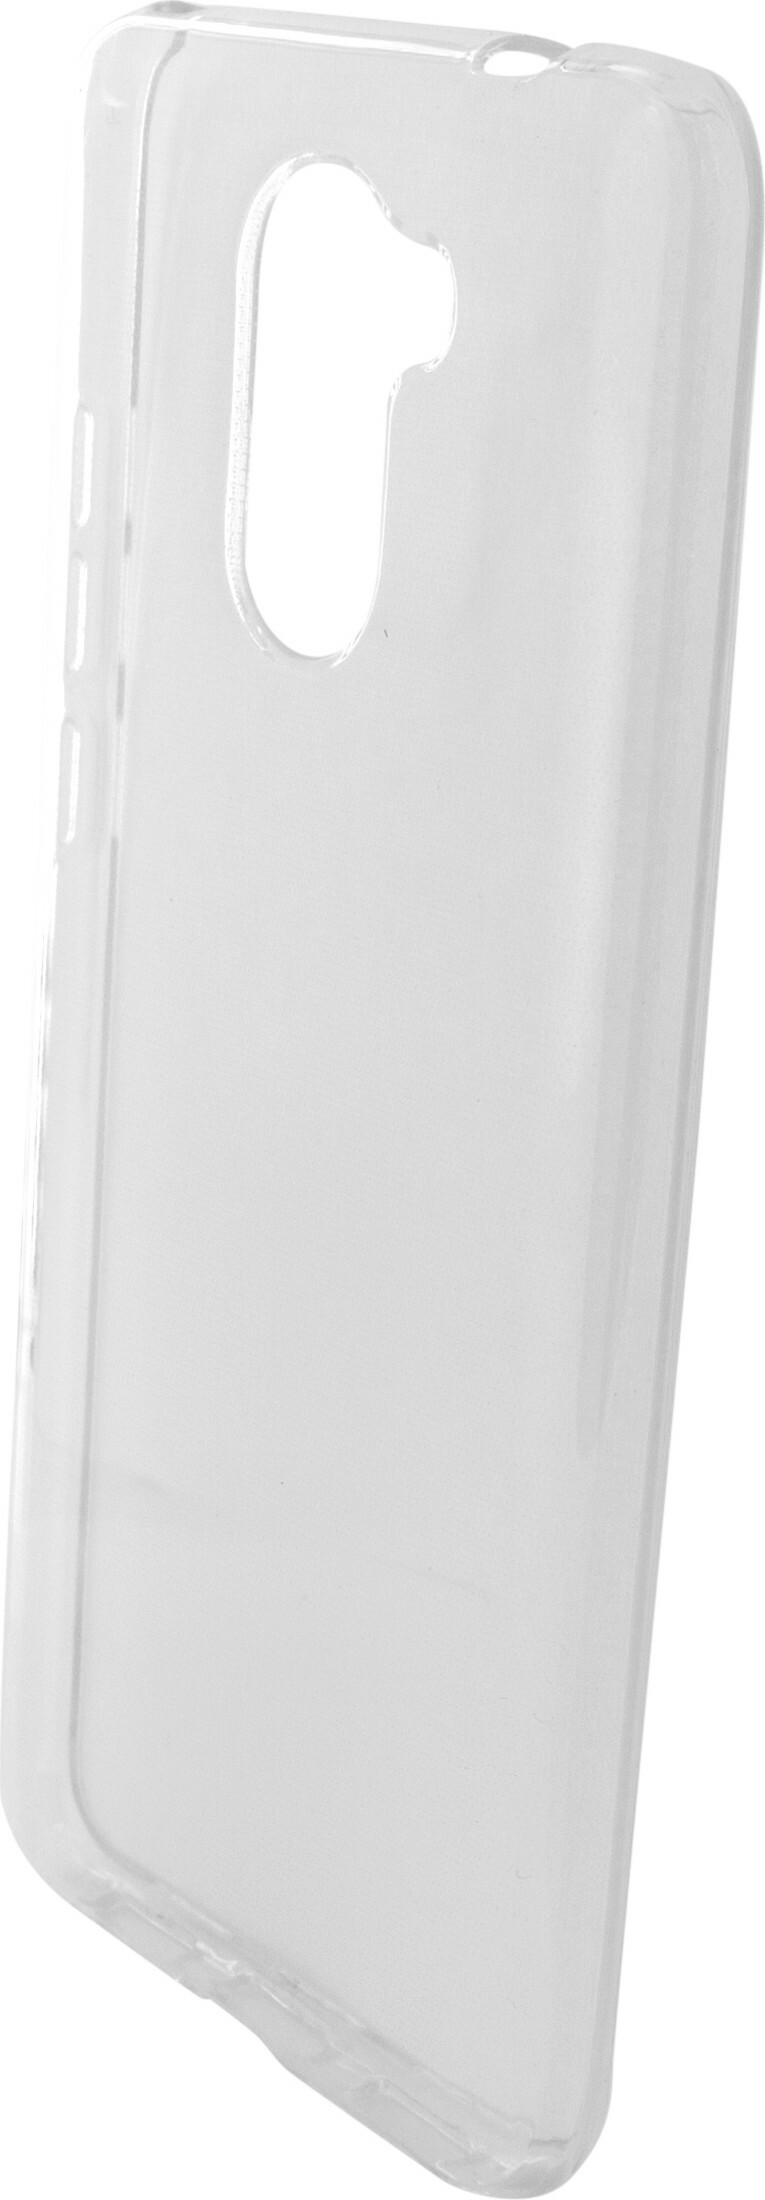 Mobiparts Classic TPU Case Huawei Y7 Transparent